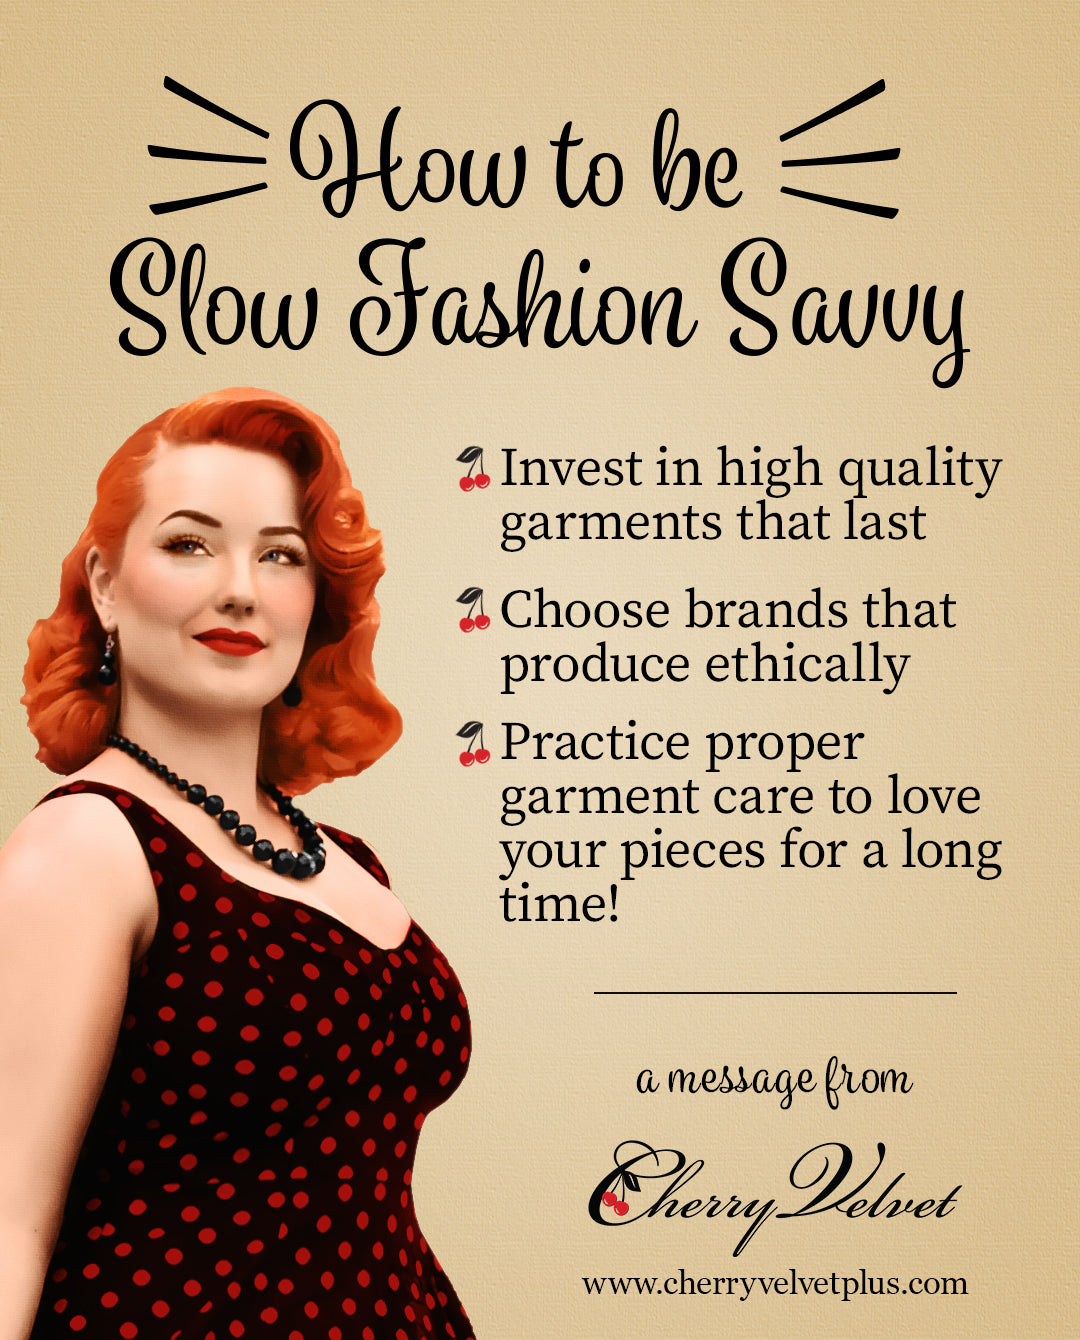 How to be Slow Fashion Savvy poster